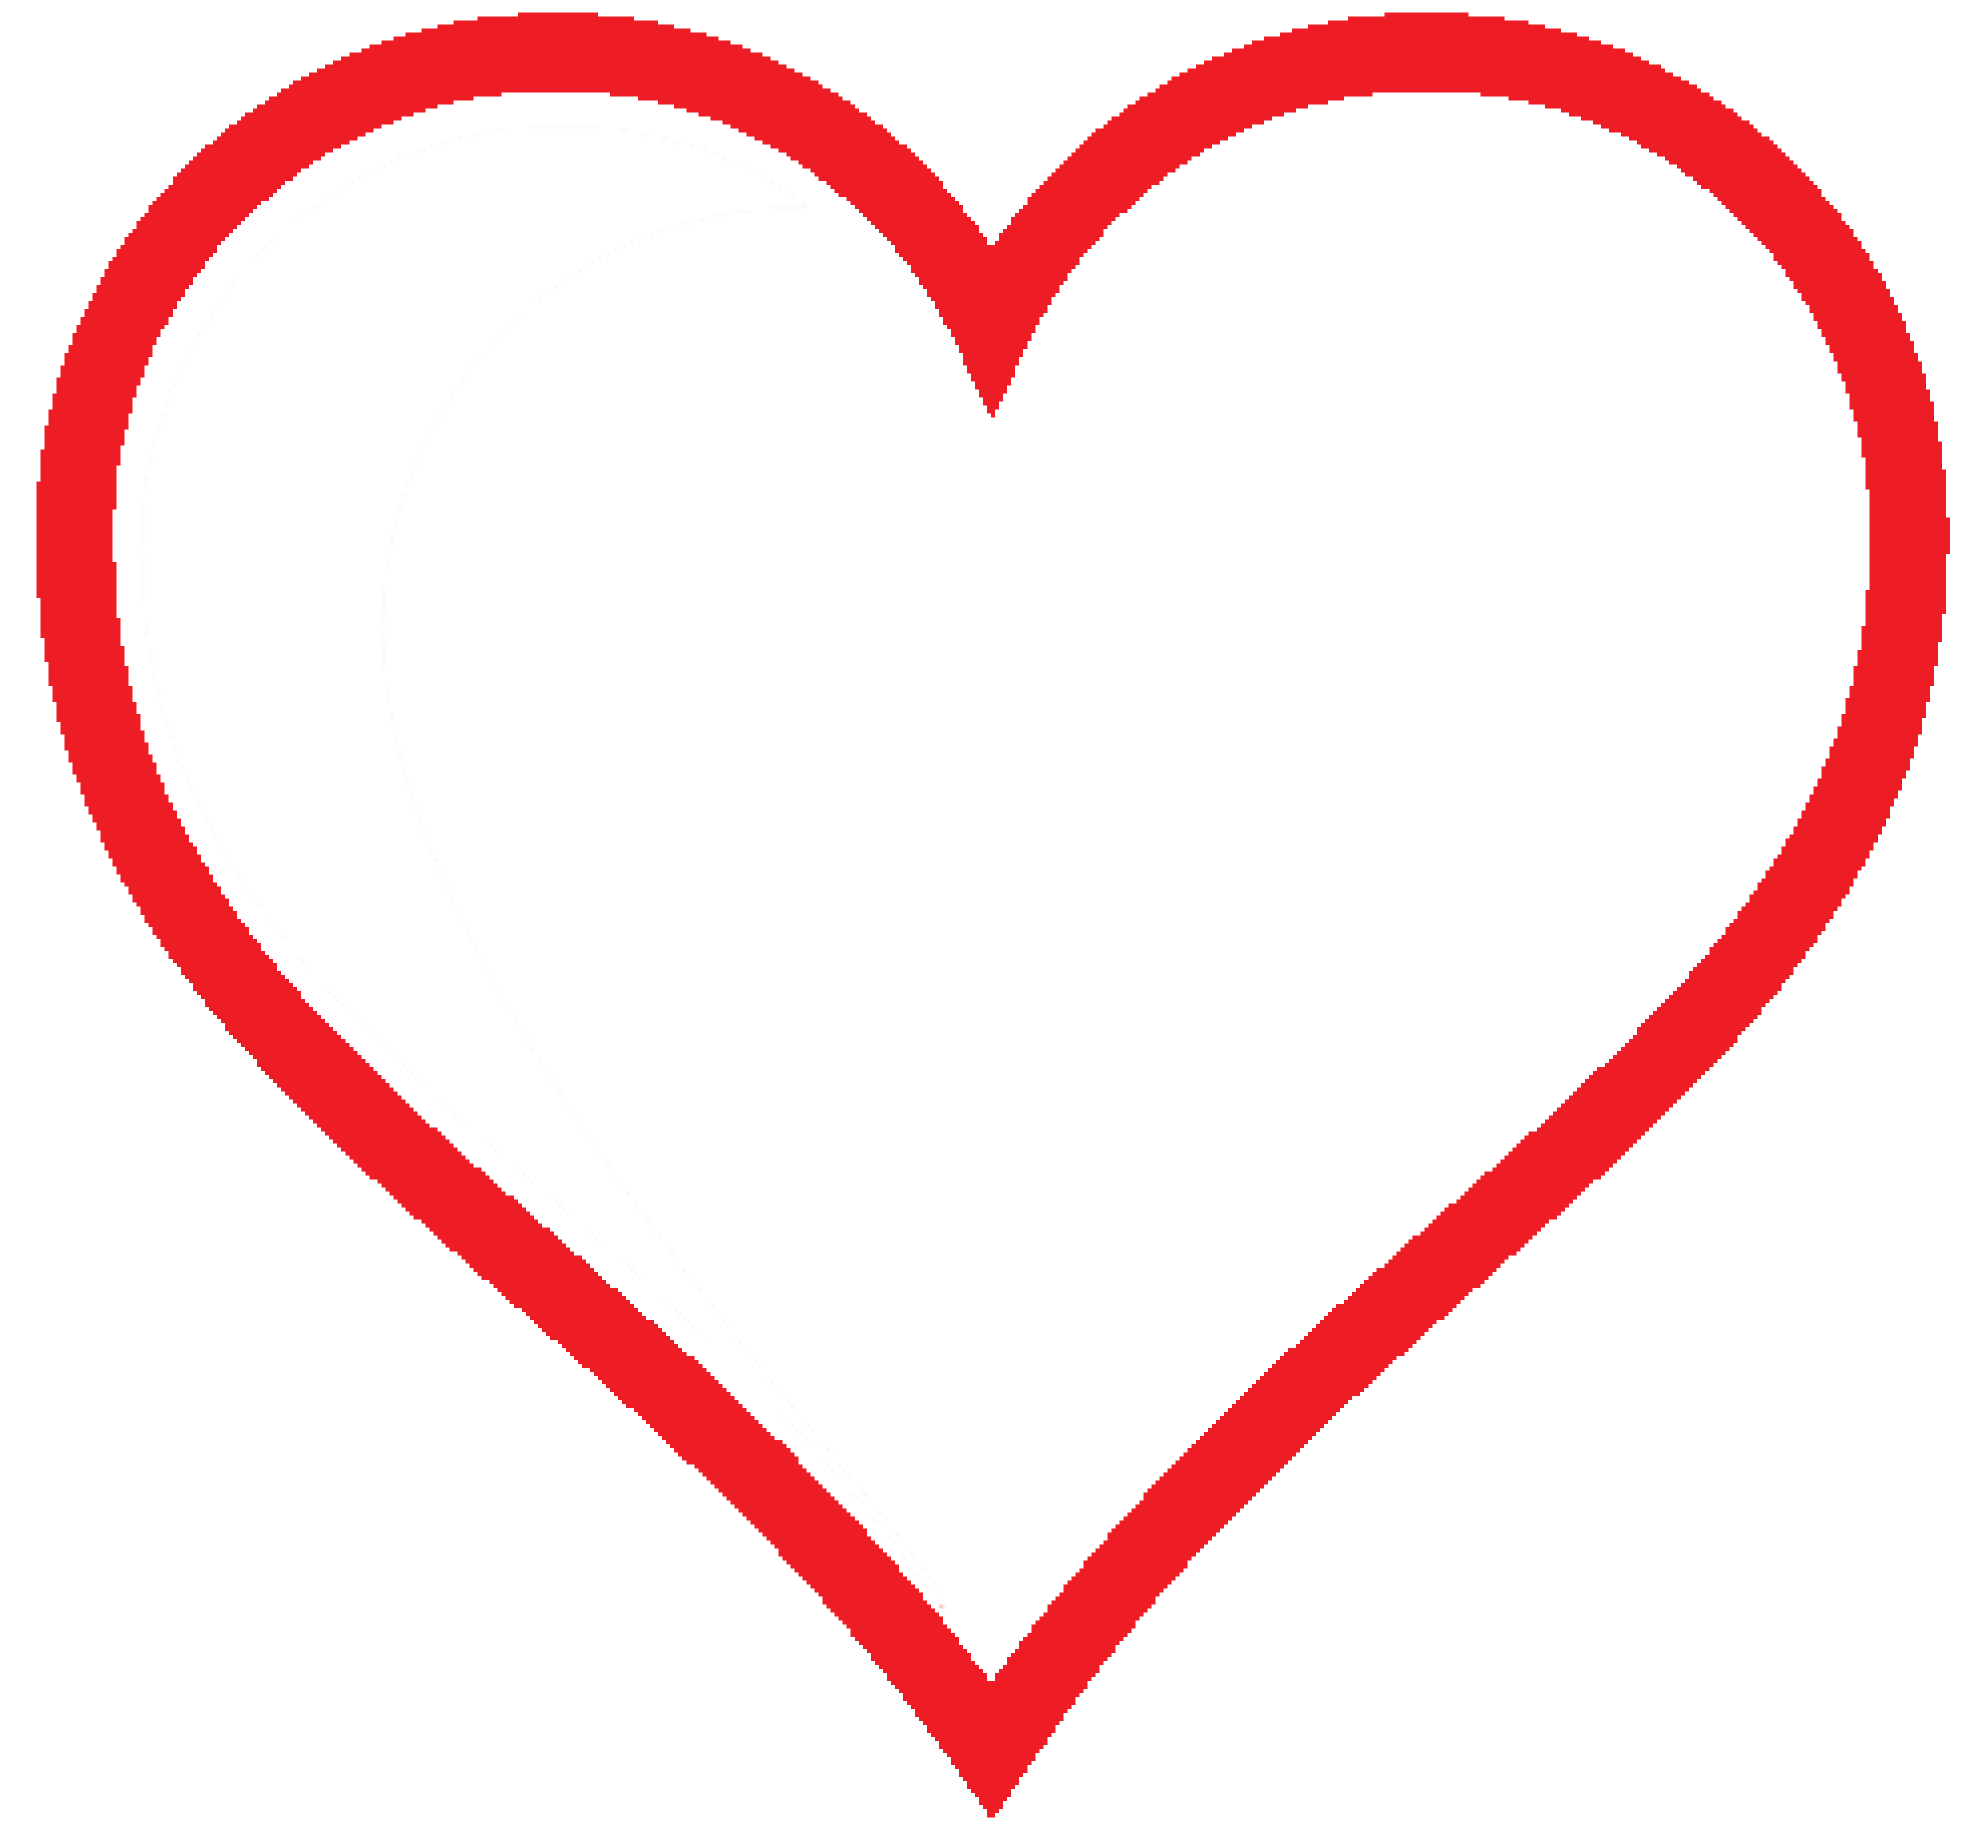 Hand heart clipart graphic transparent library Simple Heart Clipart at GetDrawings.com | Free for personal use ... graphic transparent library